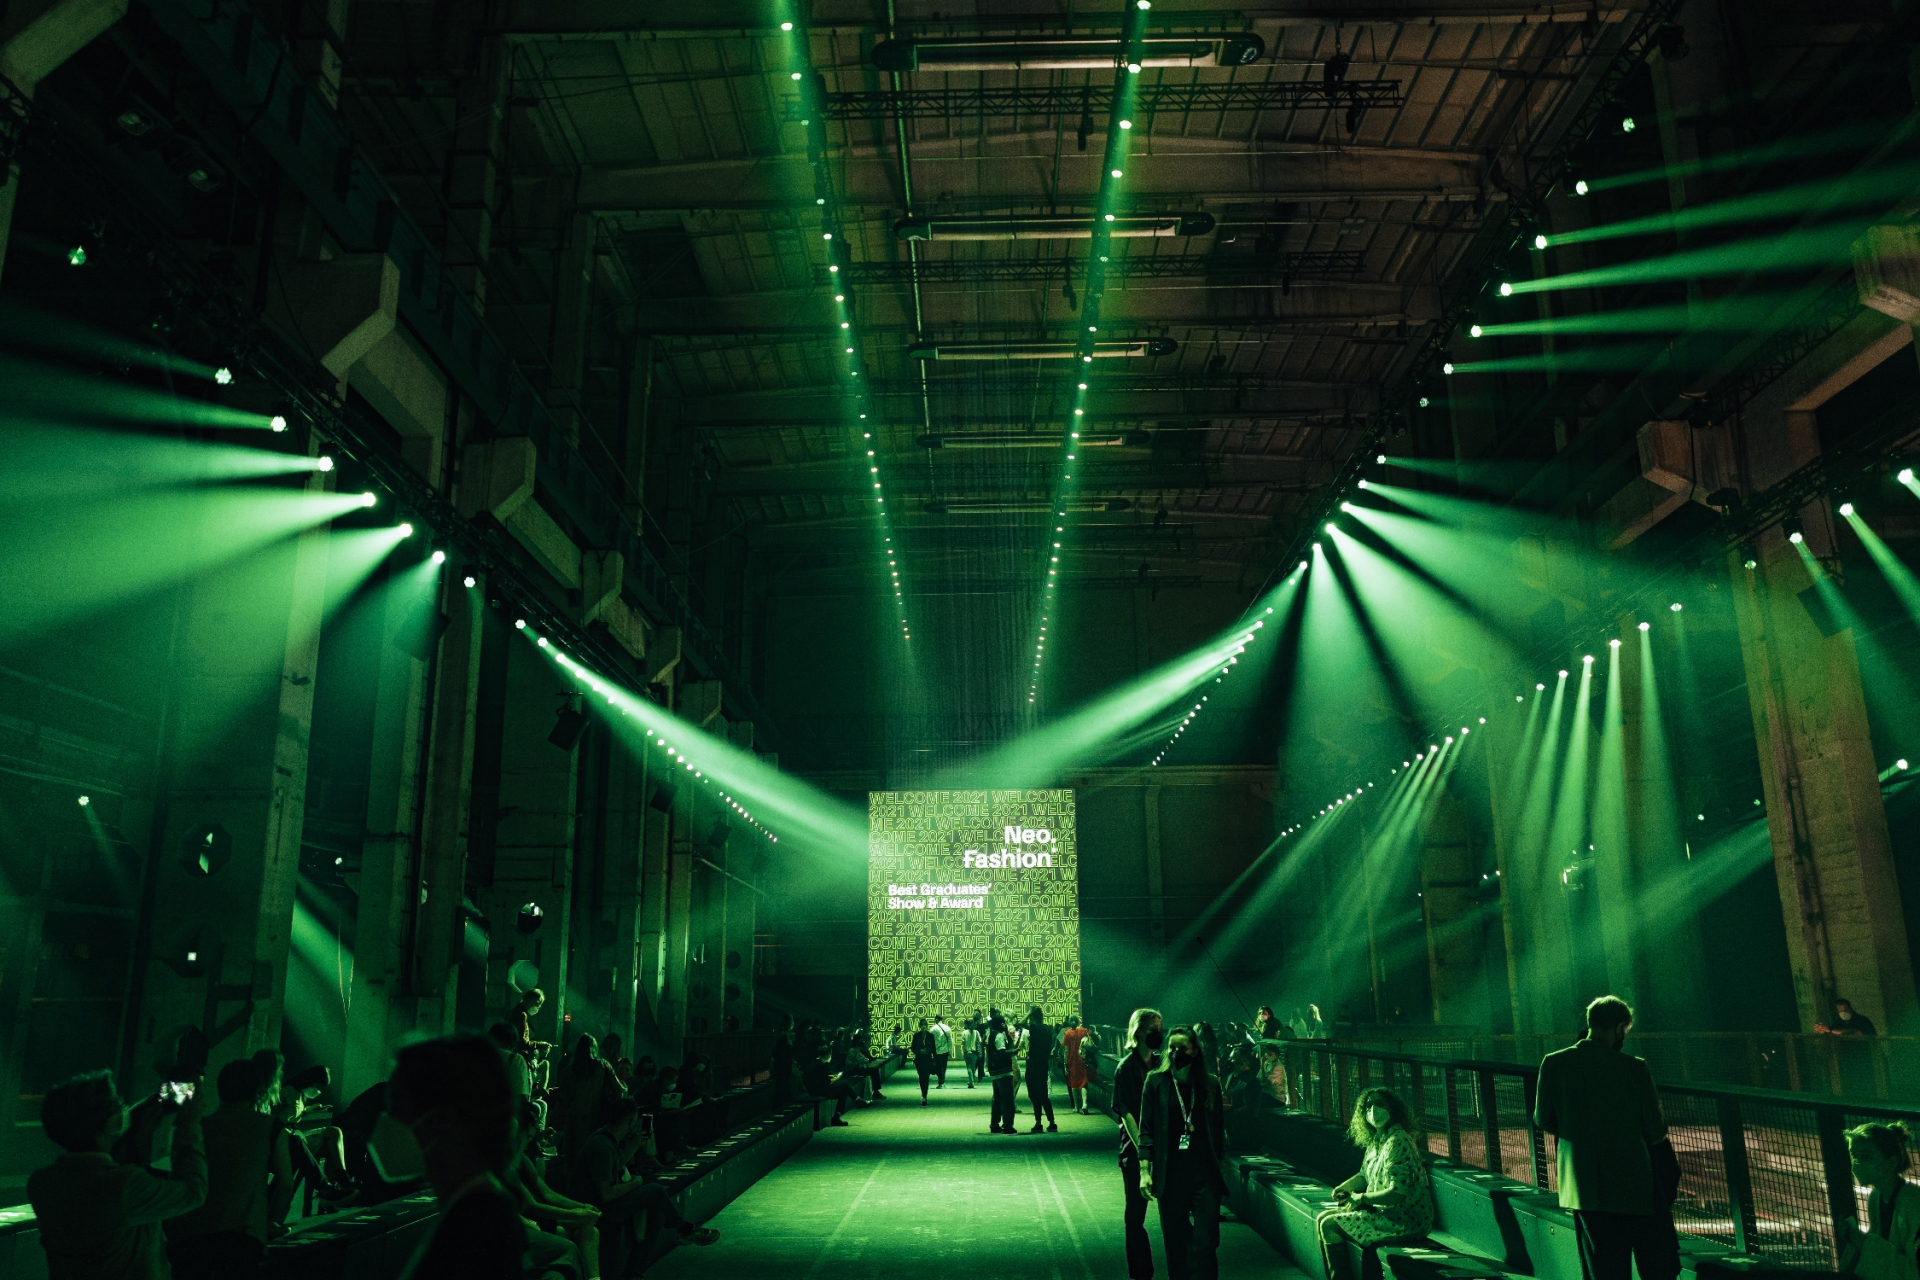 """BERLIN, GERMANY - SEPTEMBER 08: General view before the """"Neo.Fashion. Graduate Show"""" of Best Graduates Show & Award at Mercedes-Benz Fashion Week"""" at the Mercedes-Benz Fashion Week Berlin September 2021 at Kraftwerk on September 8, 2021 in Berlin, Germany. (Photo by Robert Schlesinger/Getty Images for Neo.Fashion.)"""